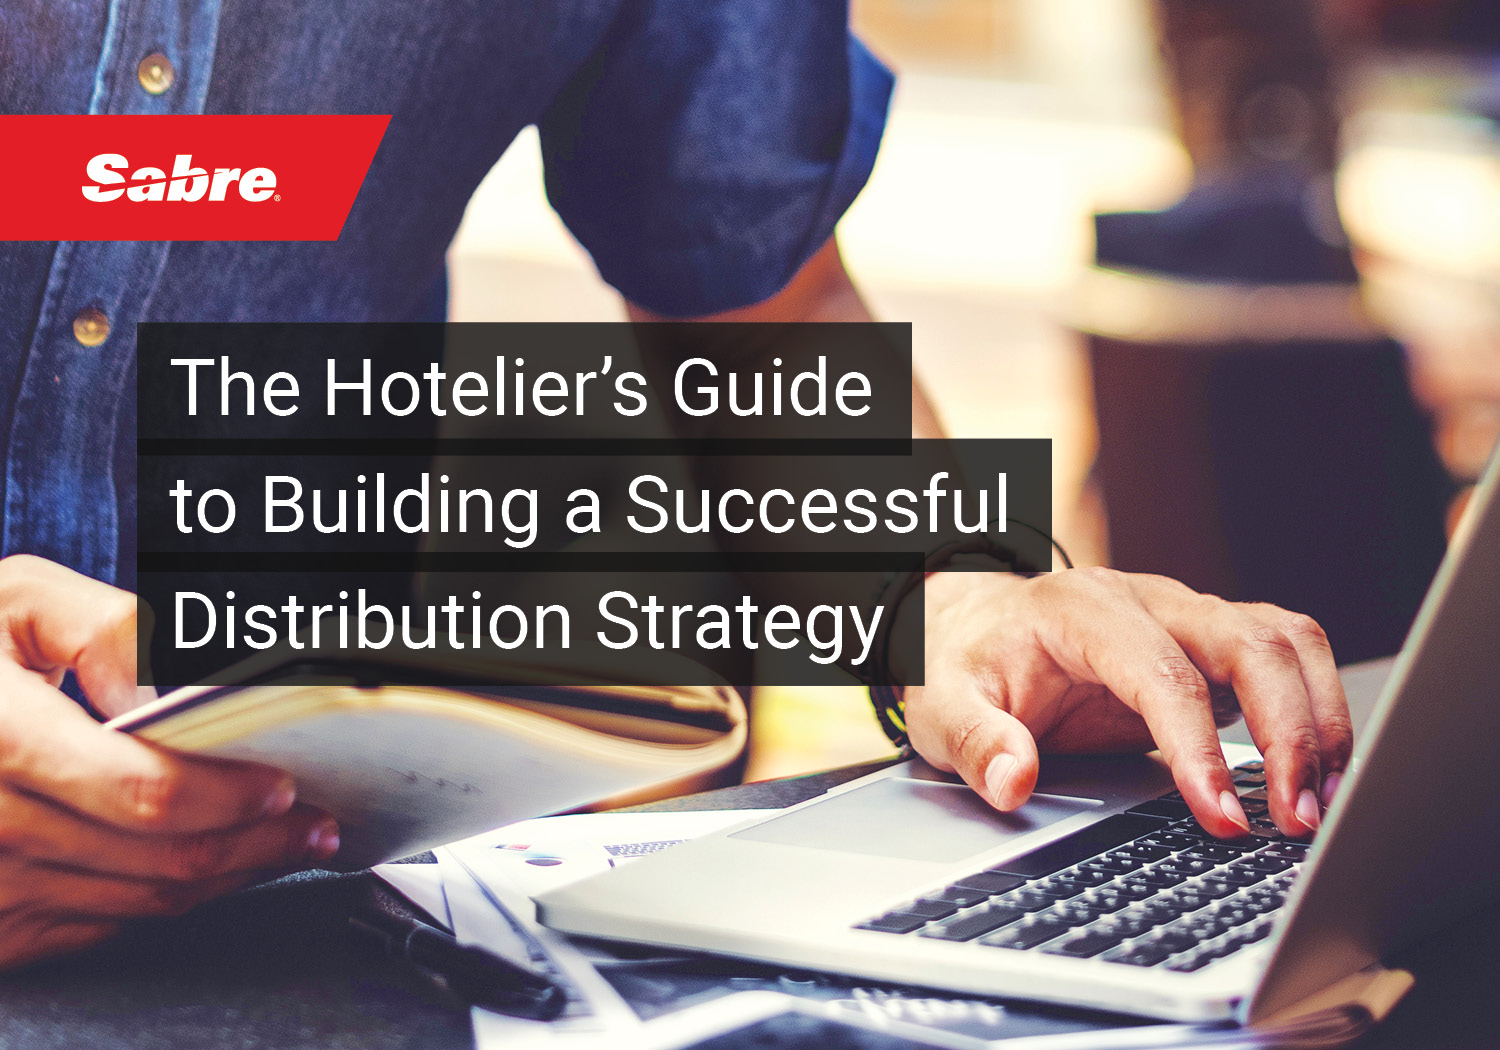 The hotelier's guide to building a successful distribution strategy cover image